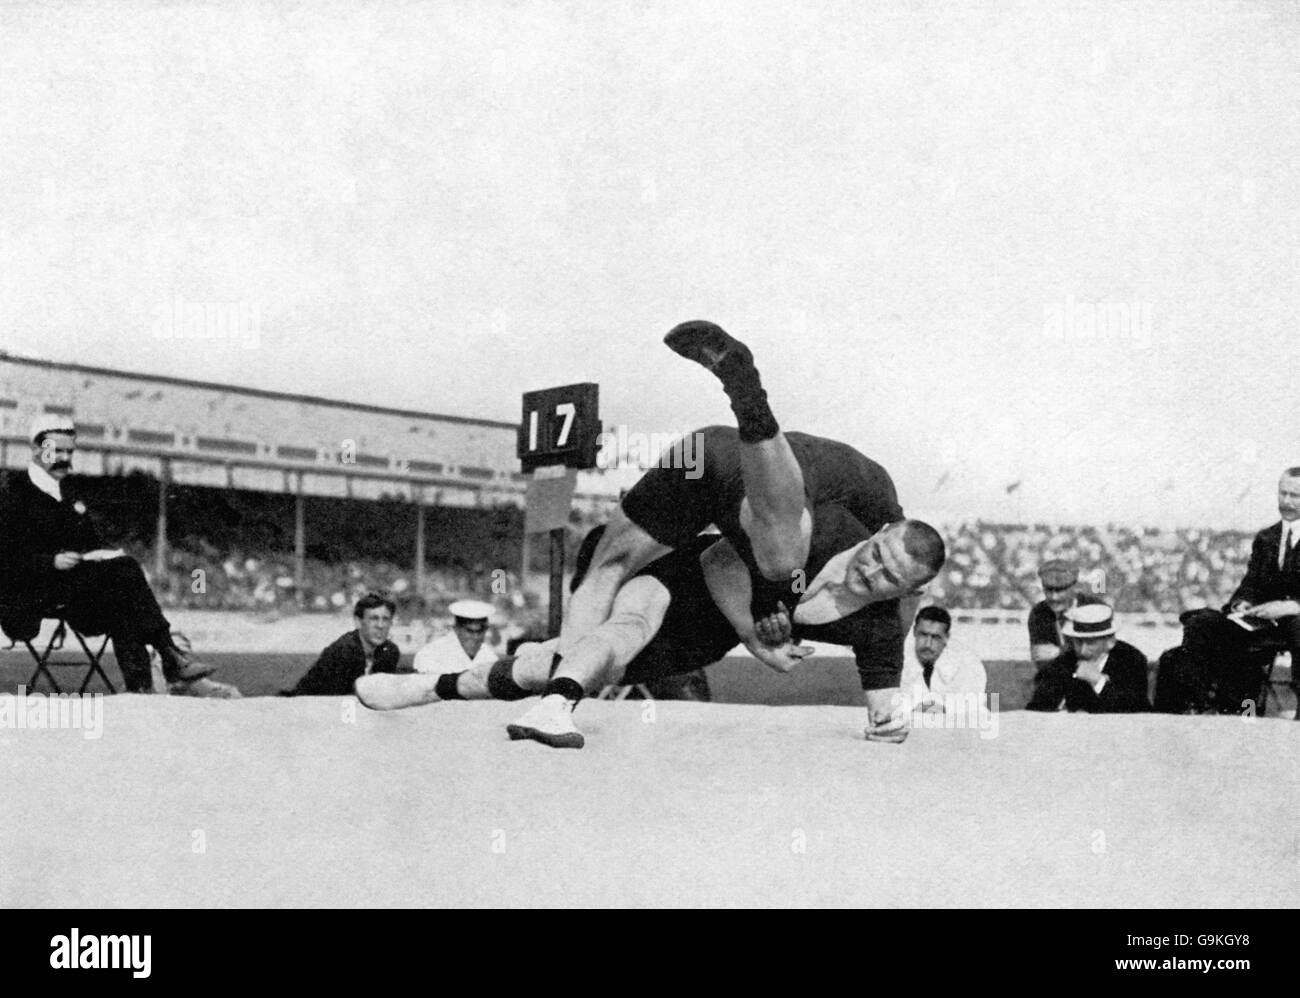 Greco-Roman Wrestling - London Olympic Games 1908 - Light Heavyweight Division - Final - White City - Stock Image